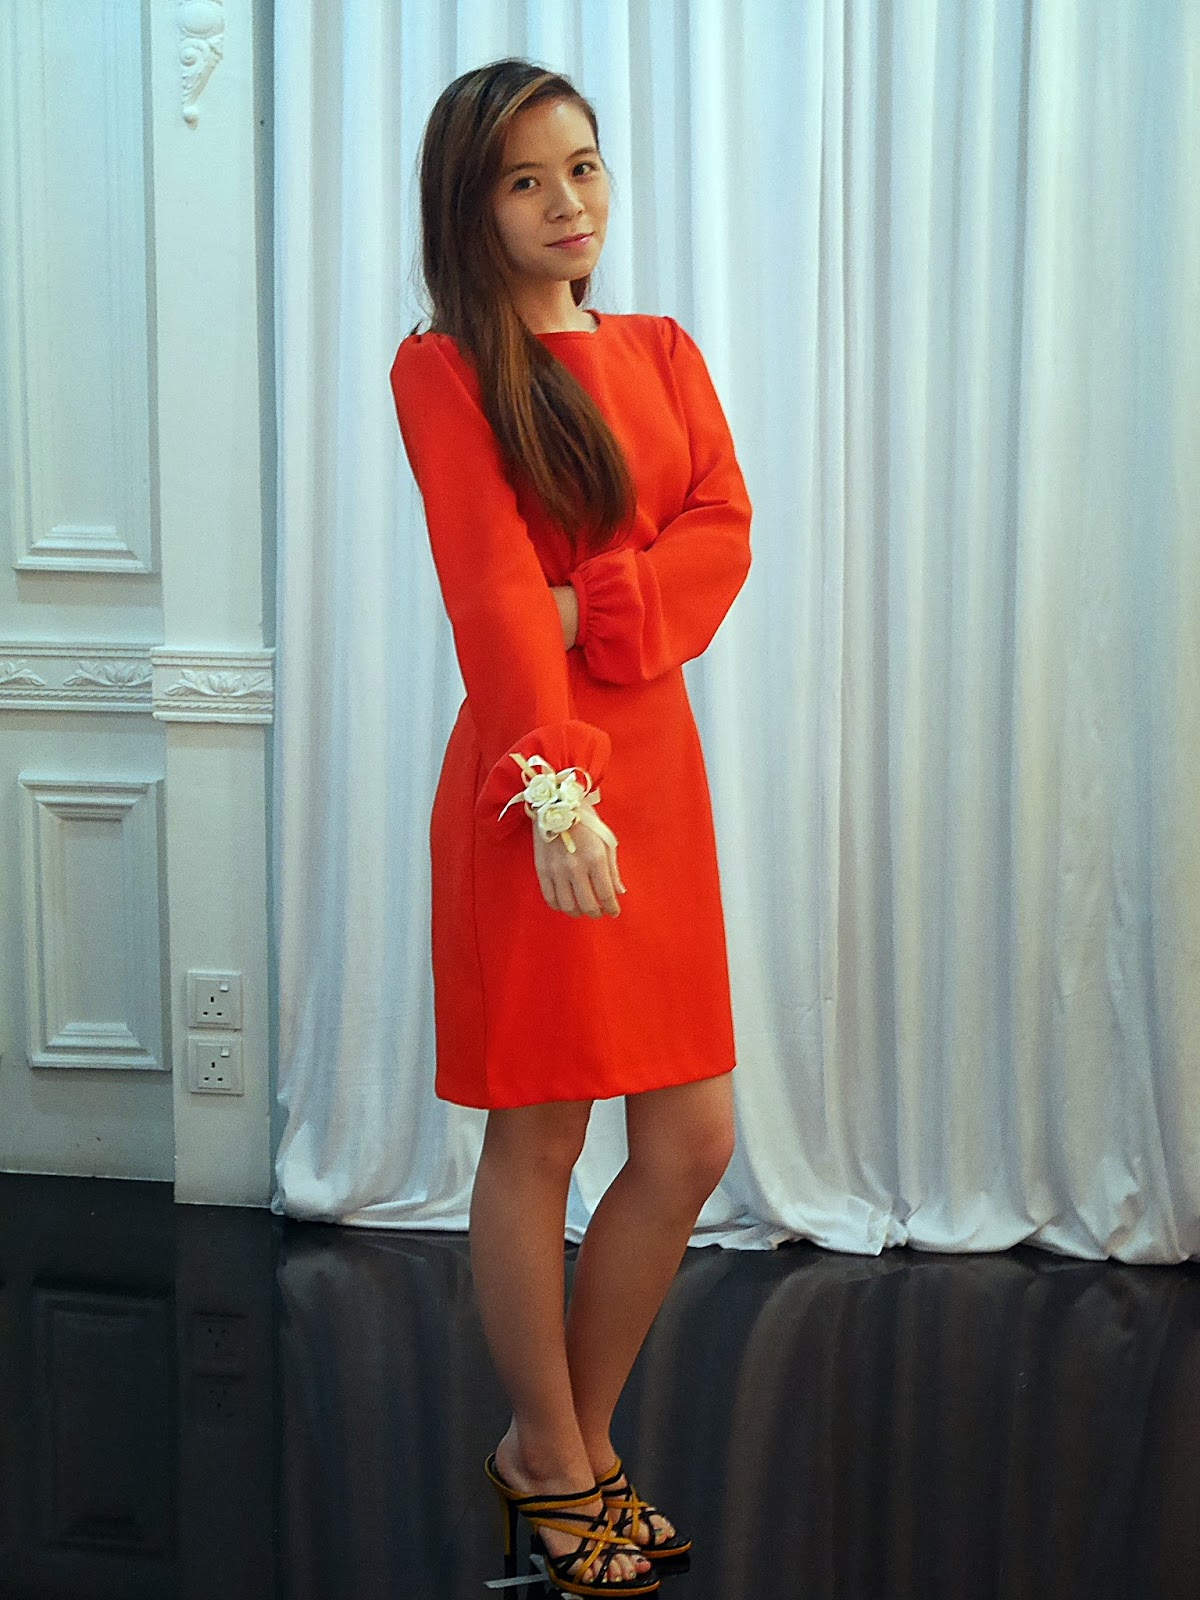 Girl in bright orange dress